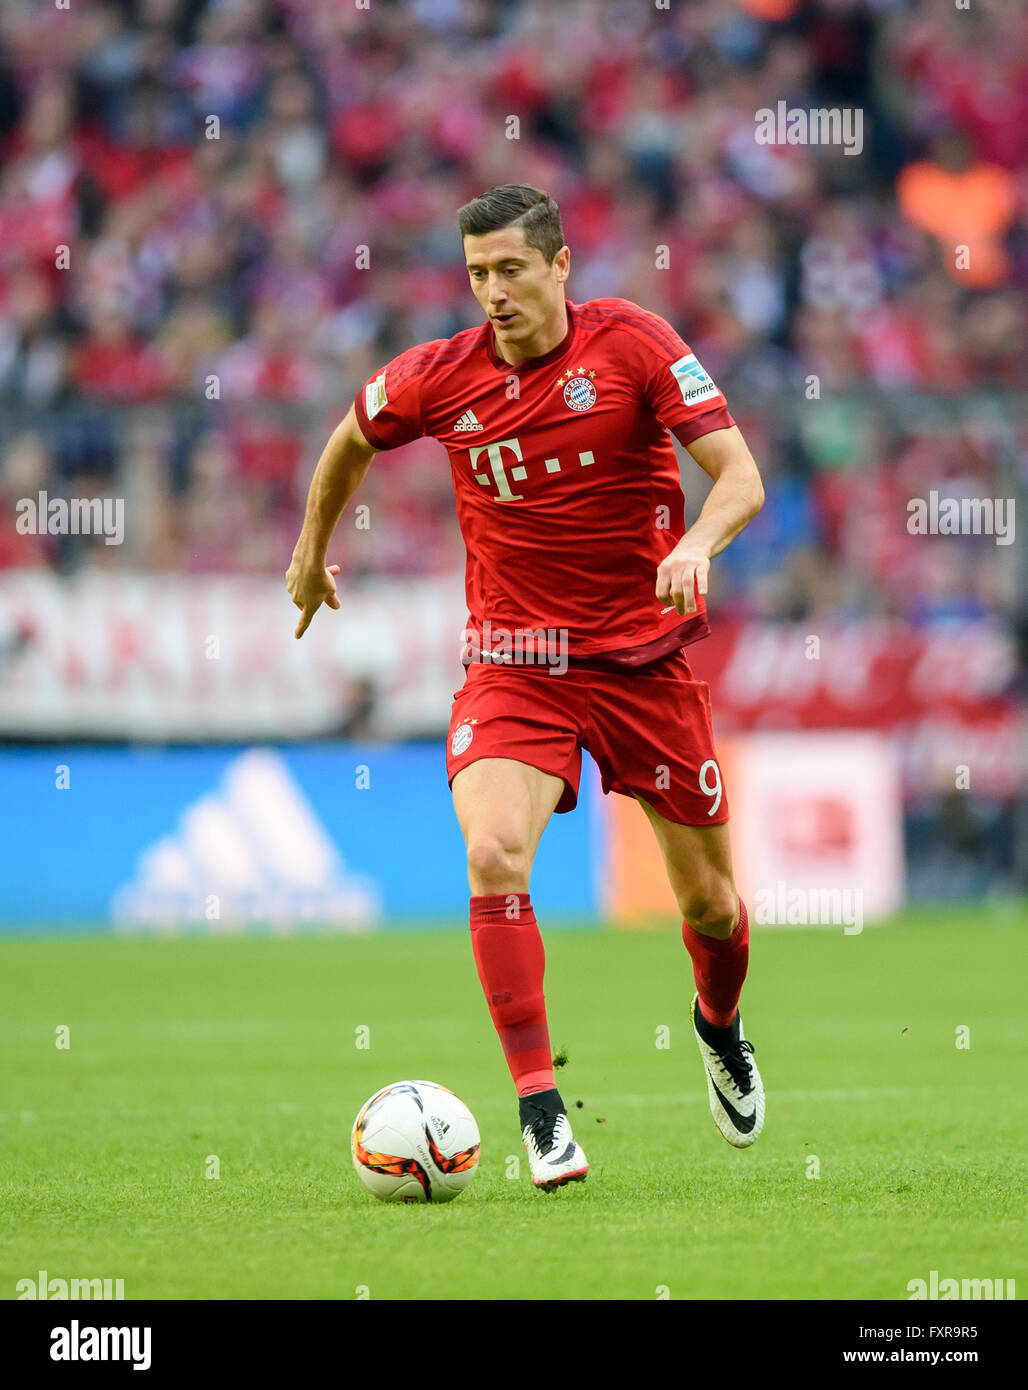 Bayern Munich s Robert Lewandowski in action during the Bundesliga